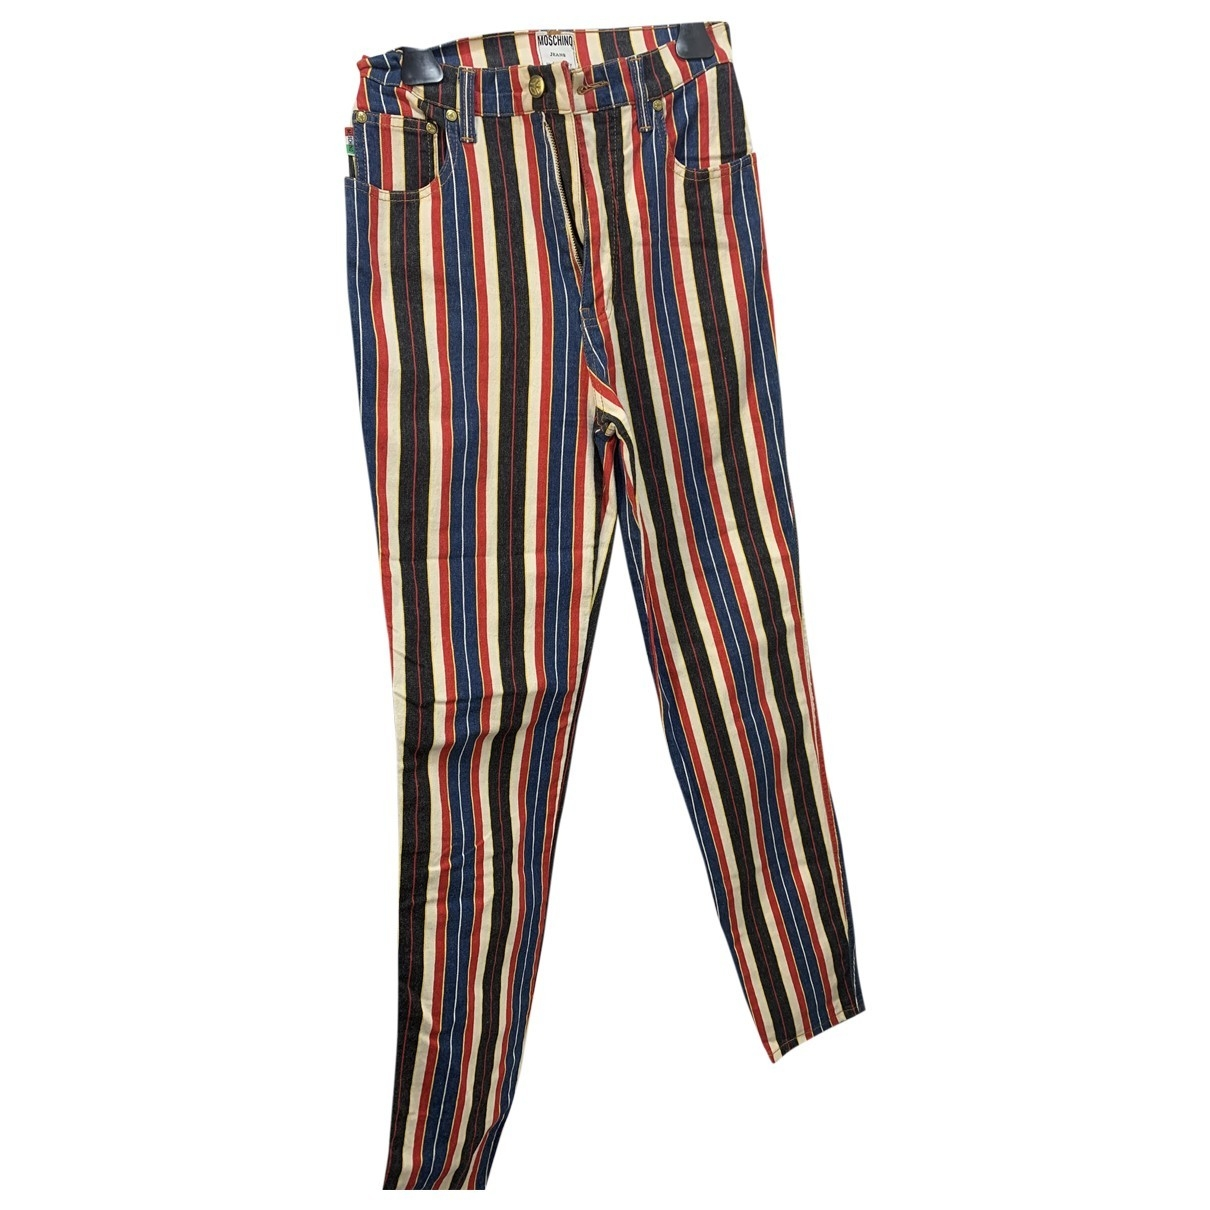 Moschino Cheap And Chic \N Multicolour Cotton Trousers for Women 42 IT